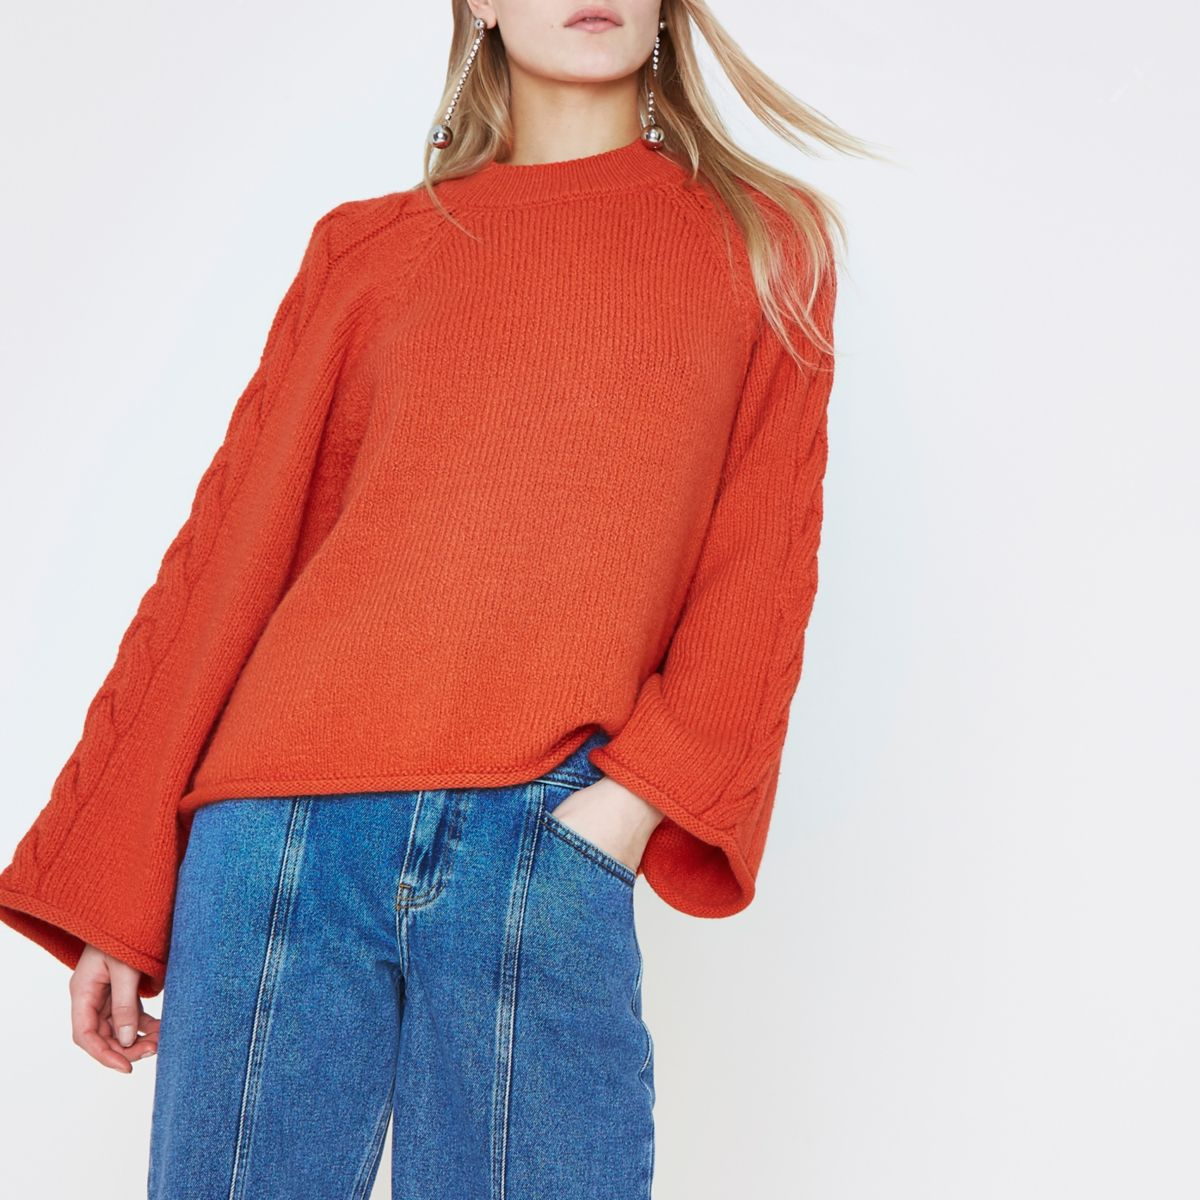 Jumper by vila. Cable texture knit. Round neck. Ribbed cuffs and hem. Regular fit - true to size. Machine wash. 50% acrylic. 50% cotton. Seeking inspiration from street and city 0549sahibi.tk: $